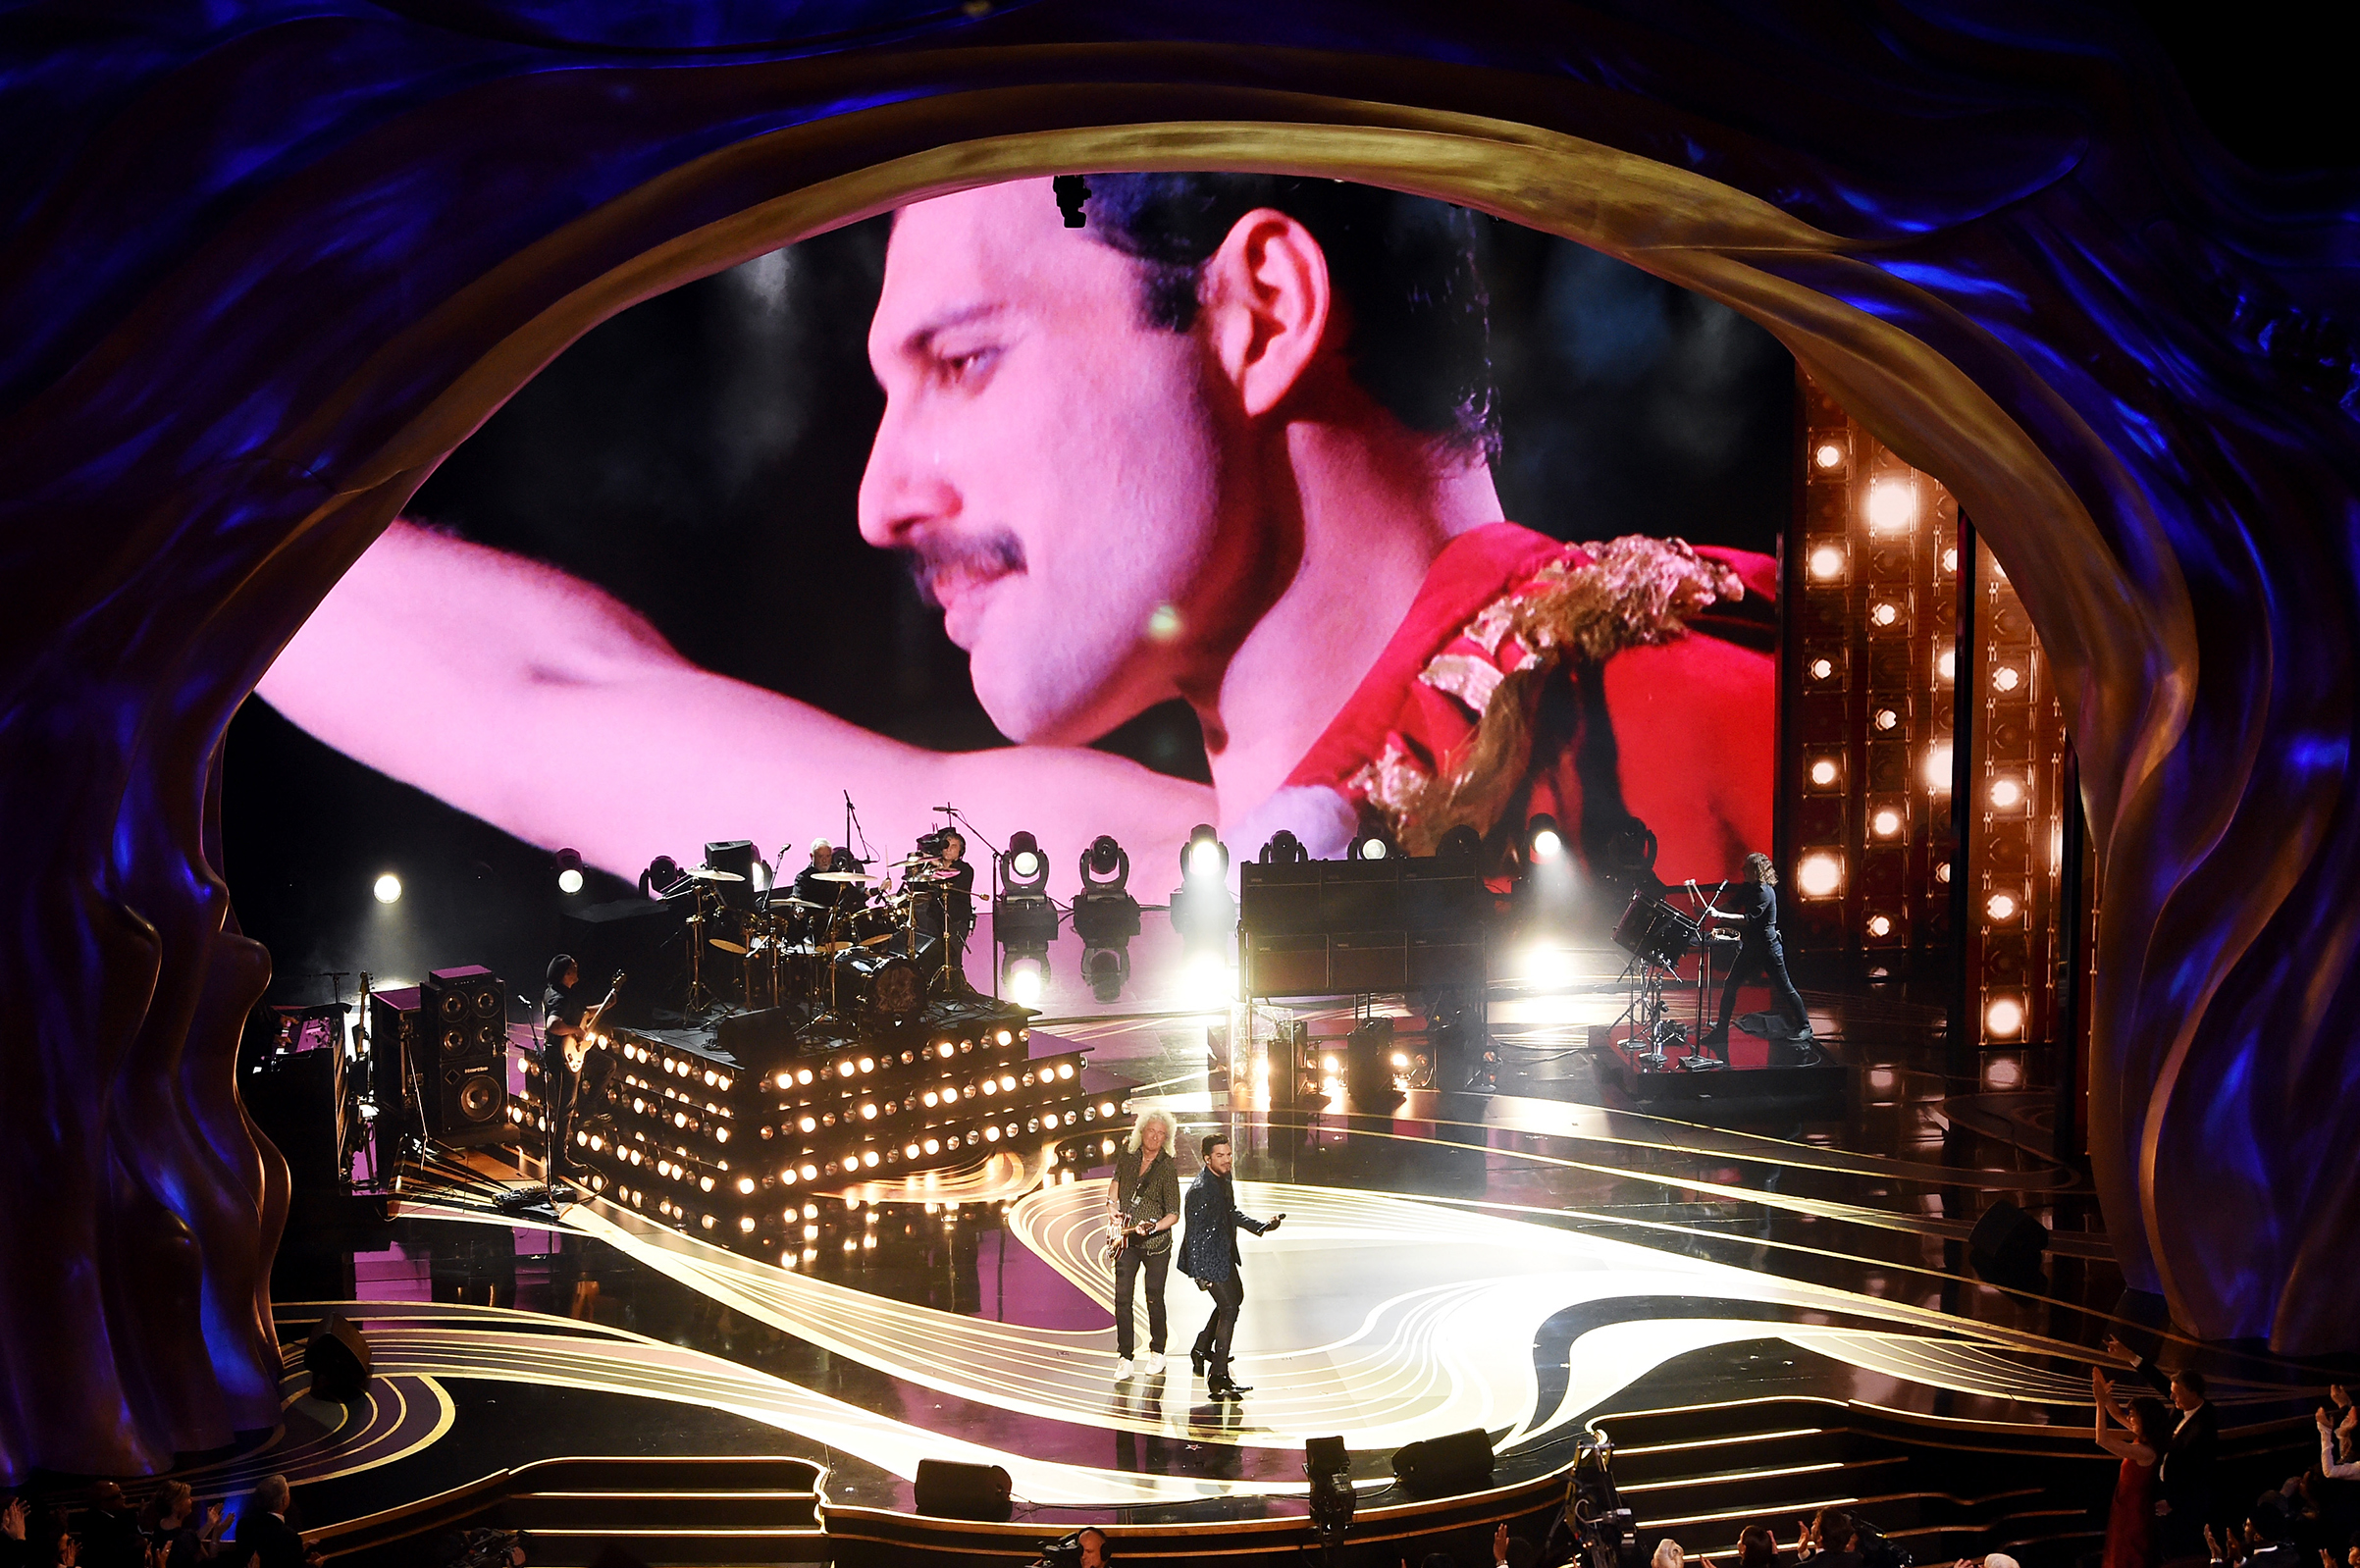 An image of the late Freddie Mercury is projected onto a screen while Adam Lambert + Queen perform onstage during the 91st Annual Academy Awards at Dolby Theatre on Feb. 24, 2019.